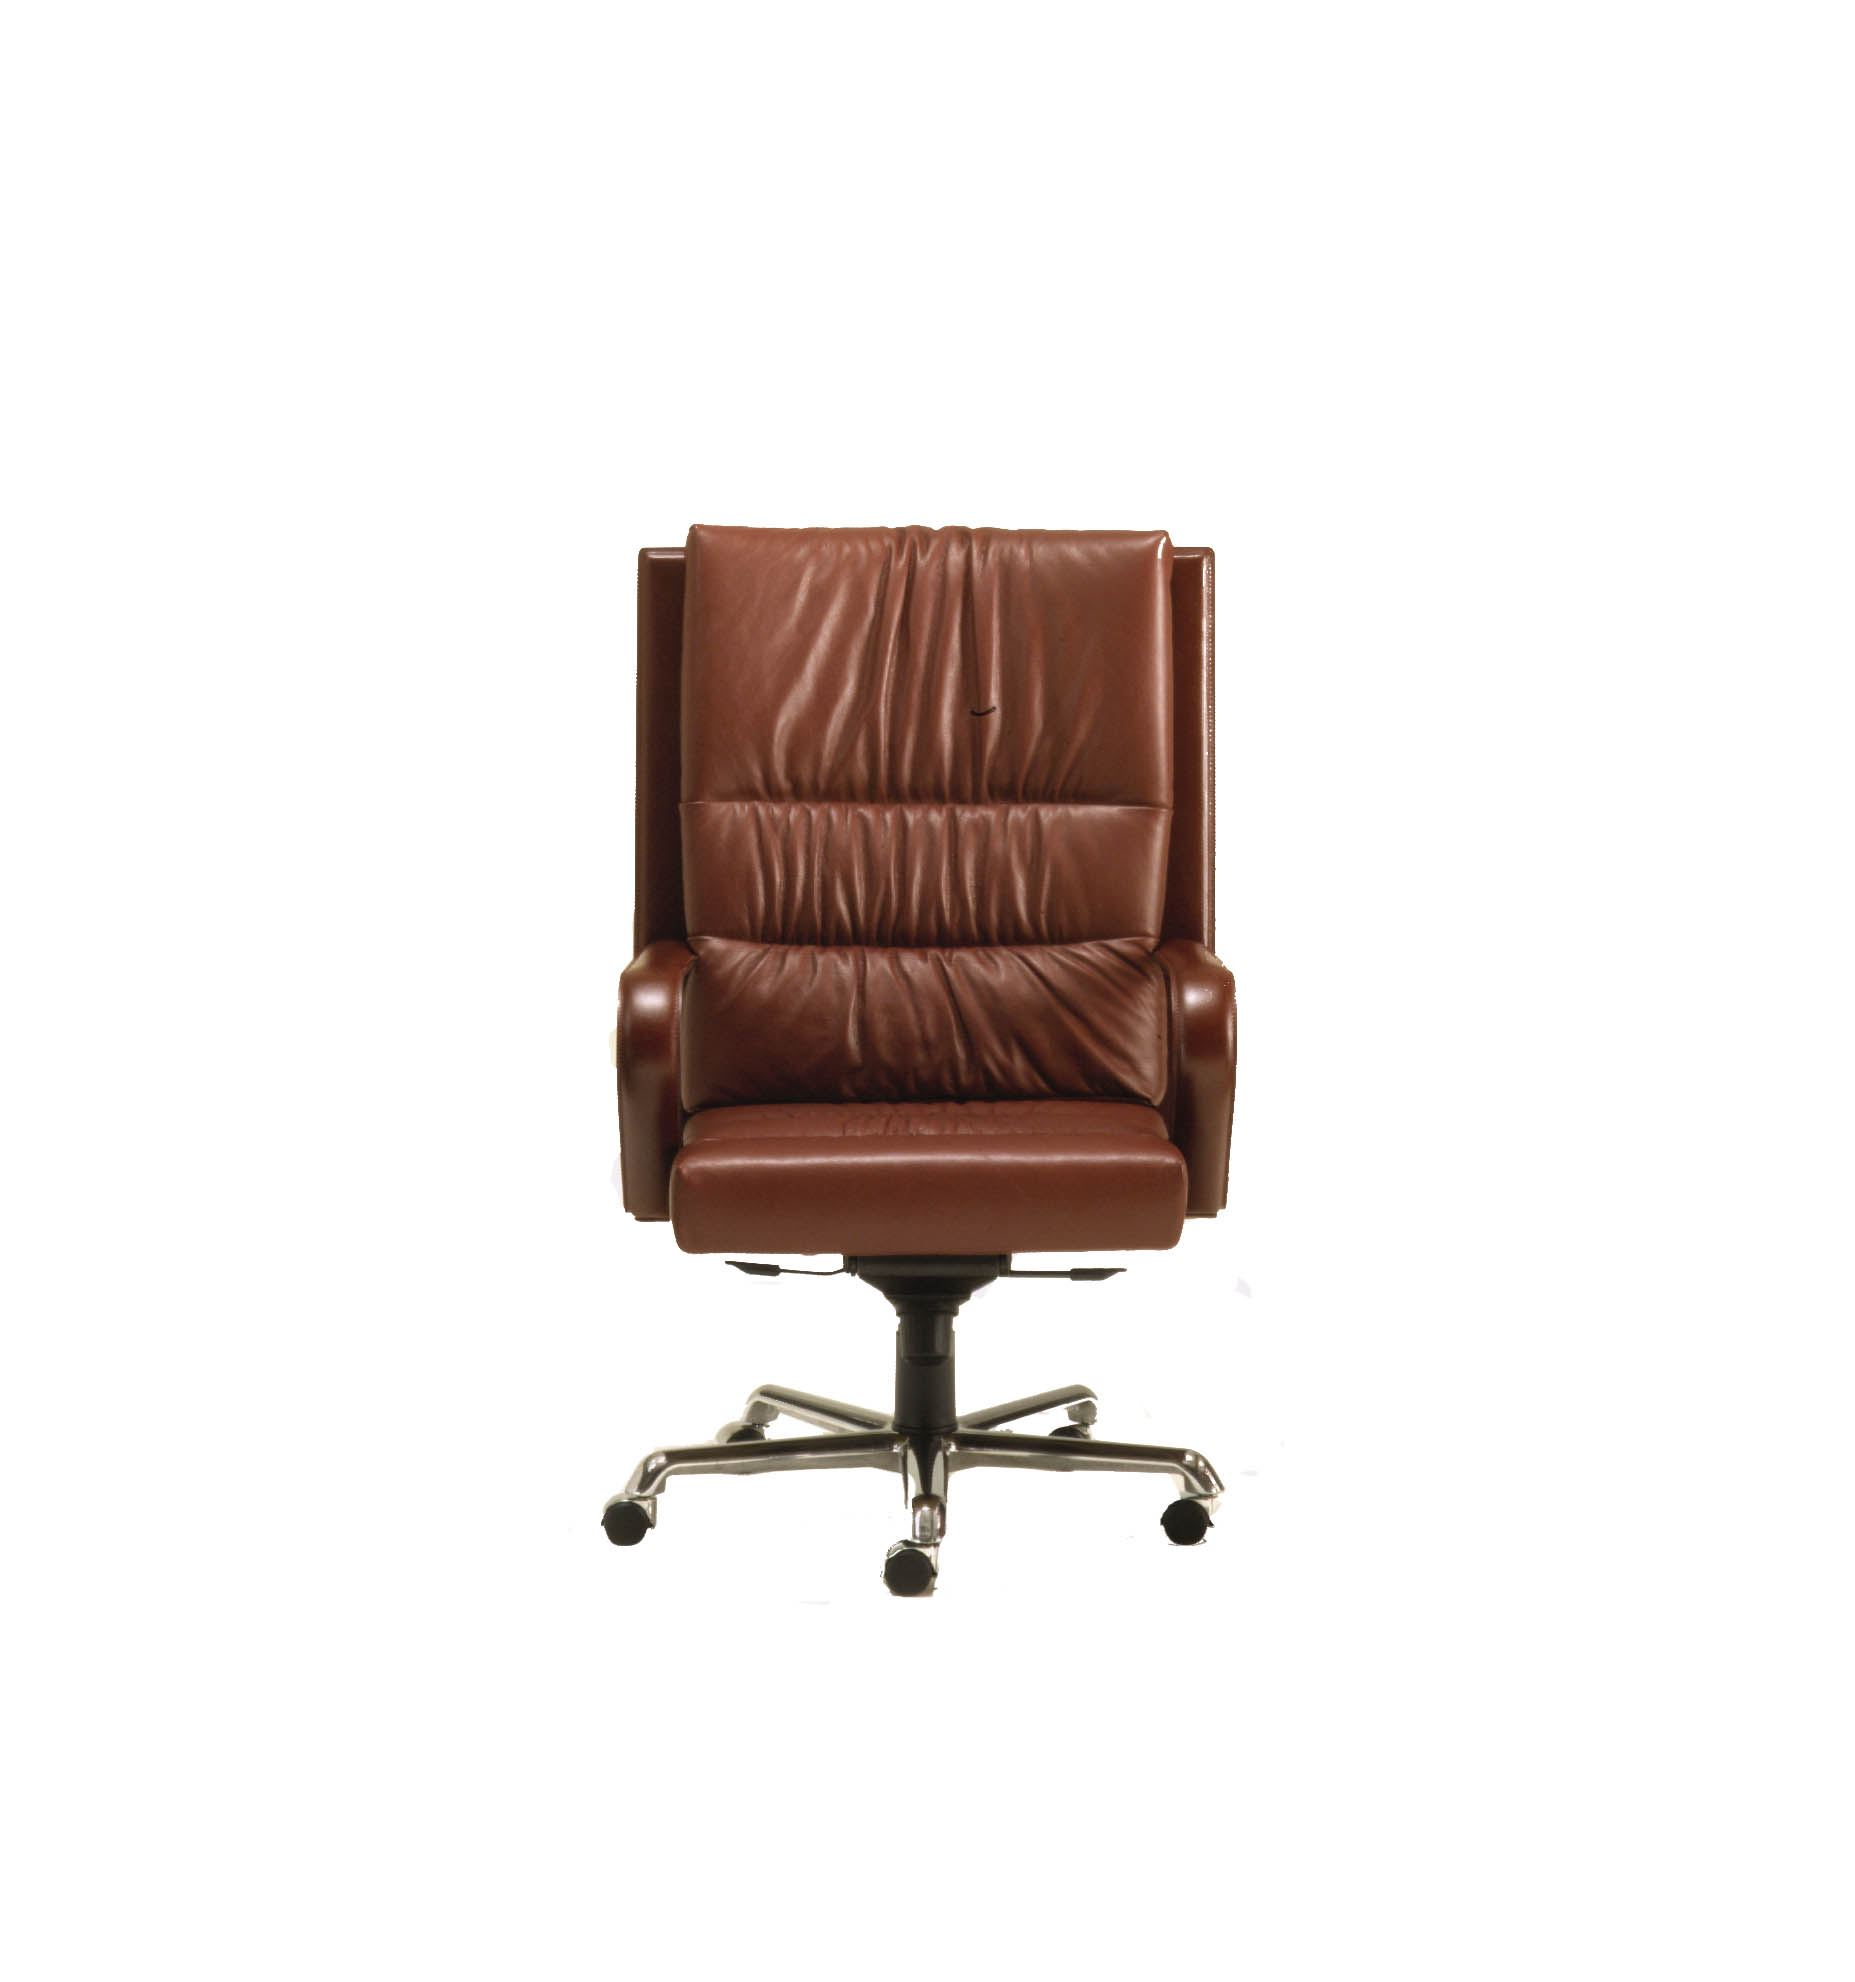 Sessel Garbo Office Collection I 4 Mariani S R L